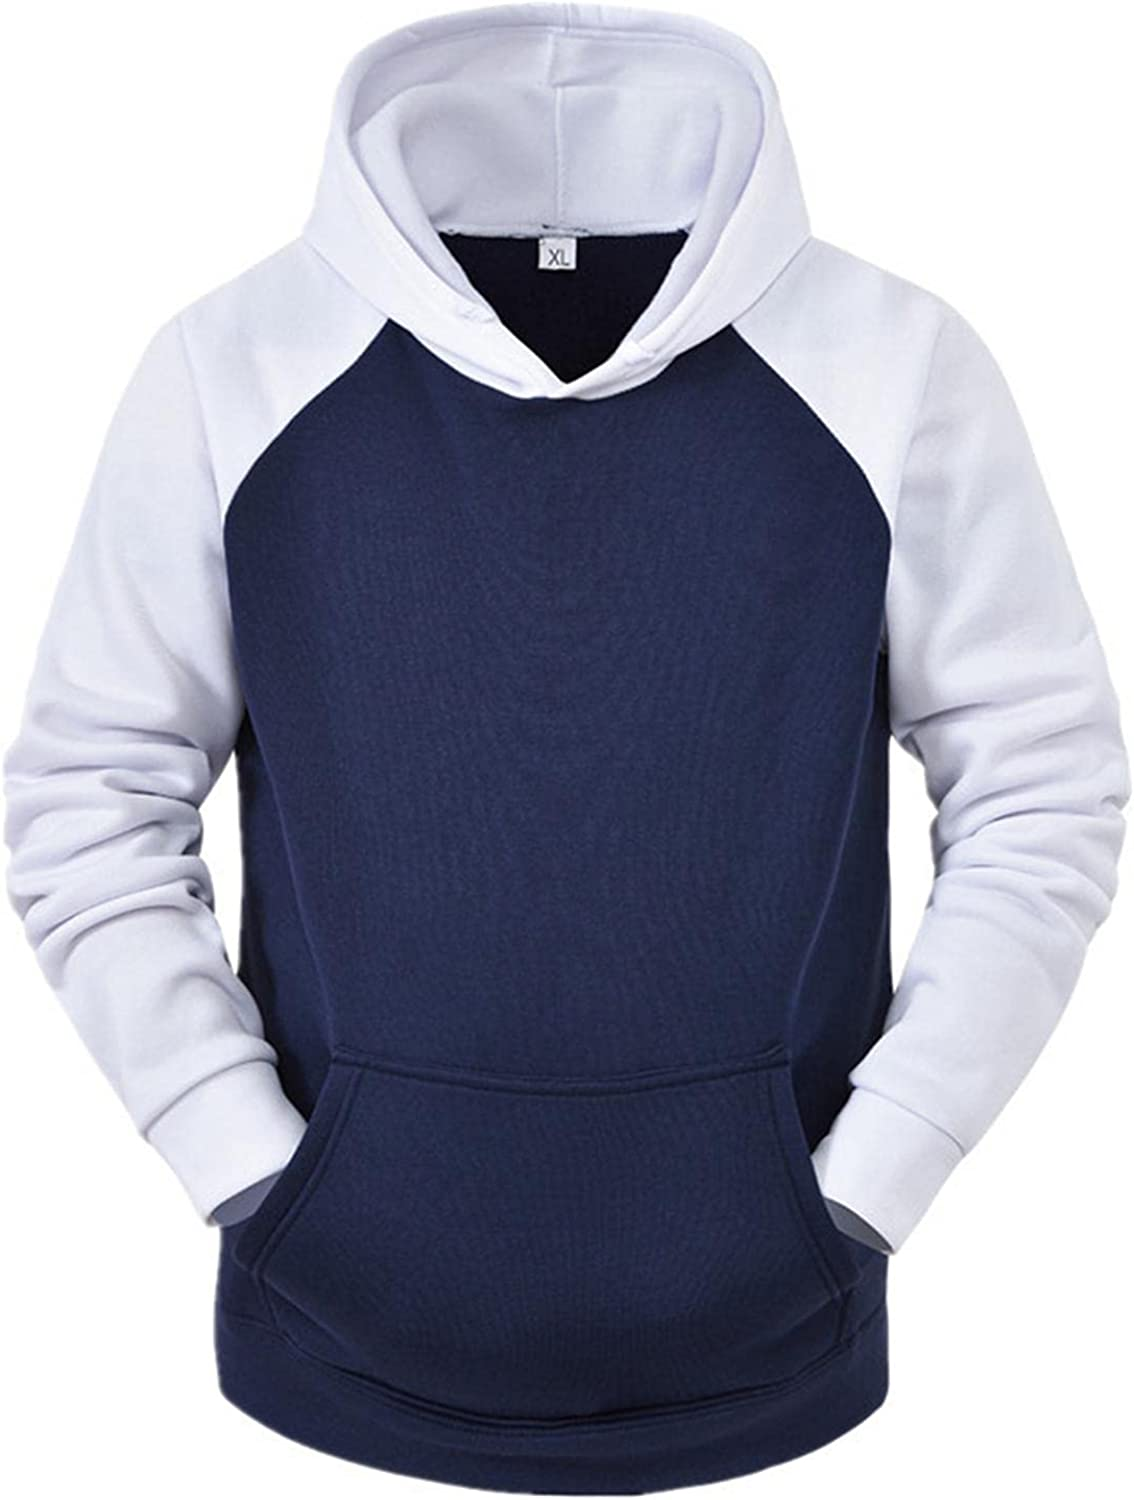 Hoodies for Men Pullover Tops Outwear Long Sleeve Sweatshirt with Pocket Fashion Athletic Sport Blouse